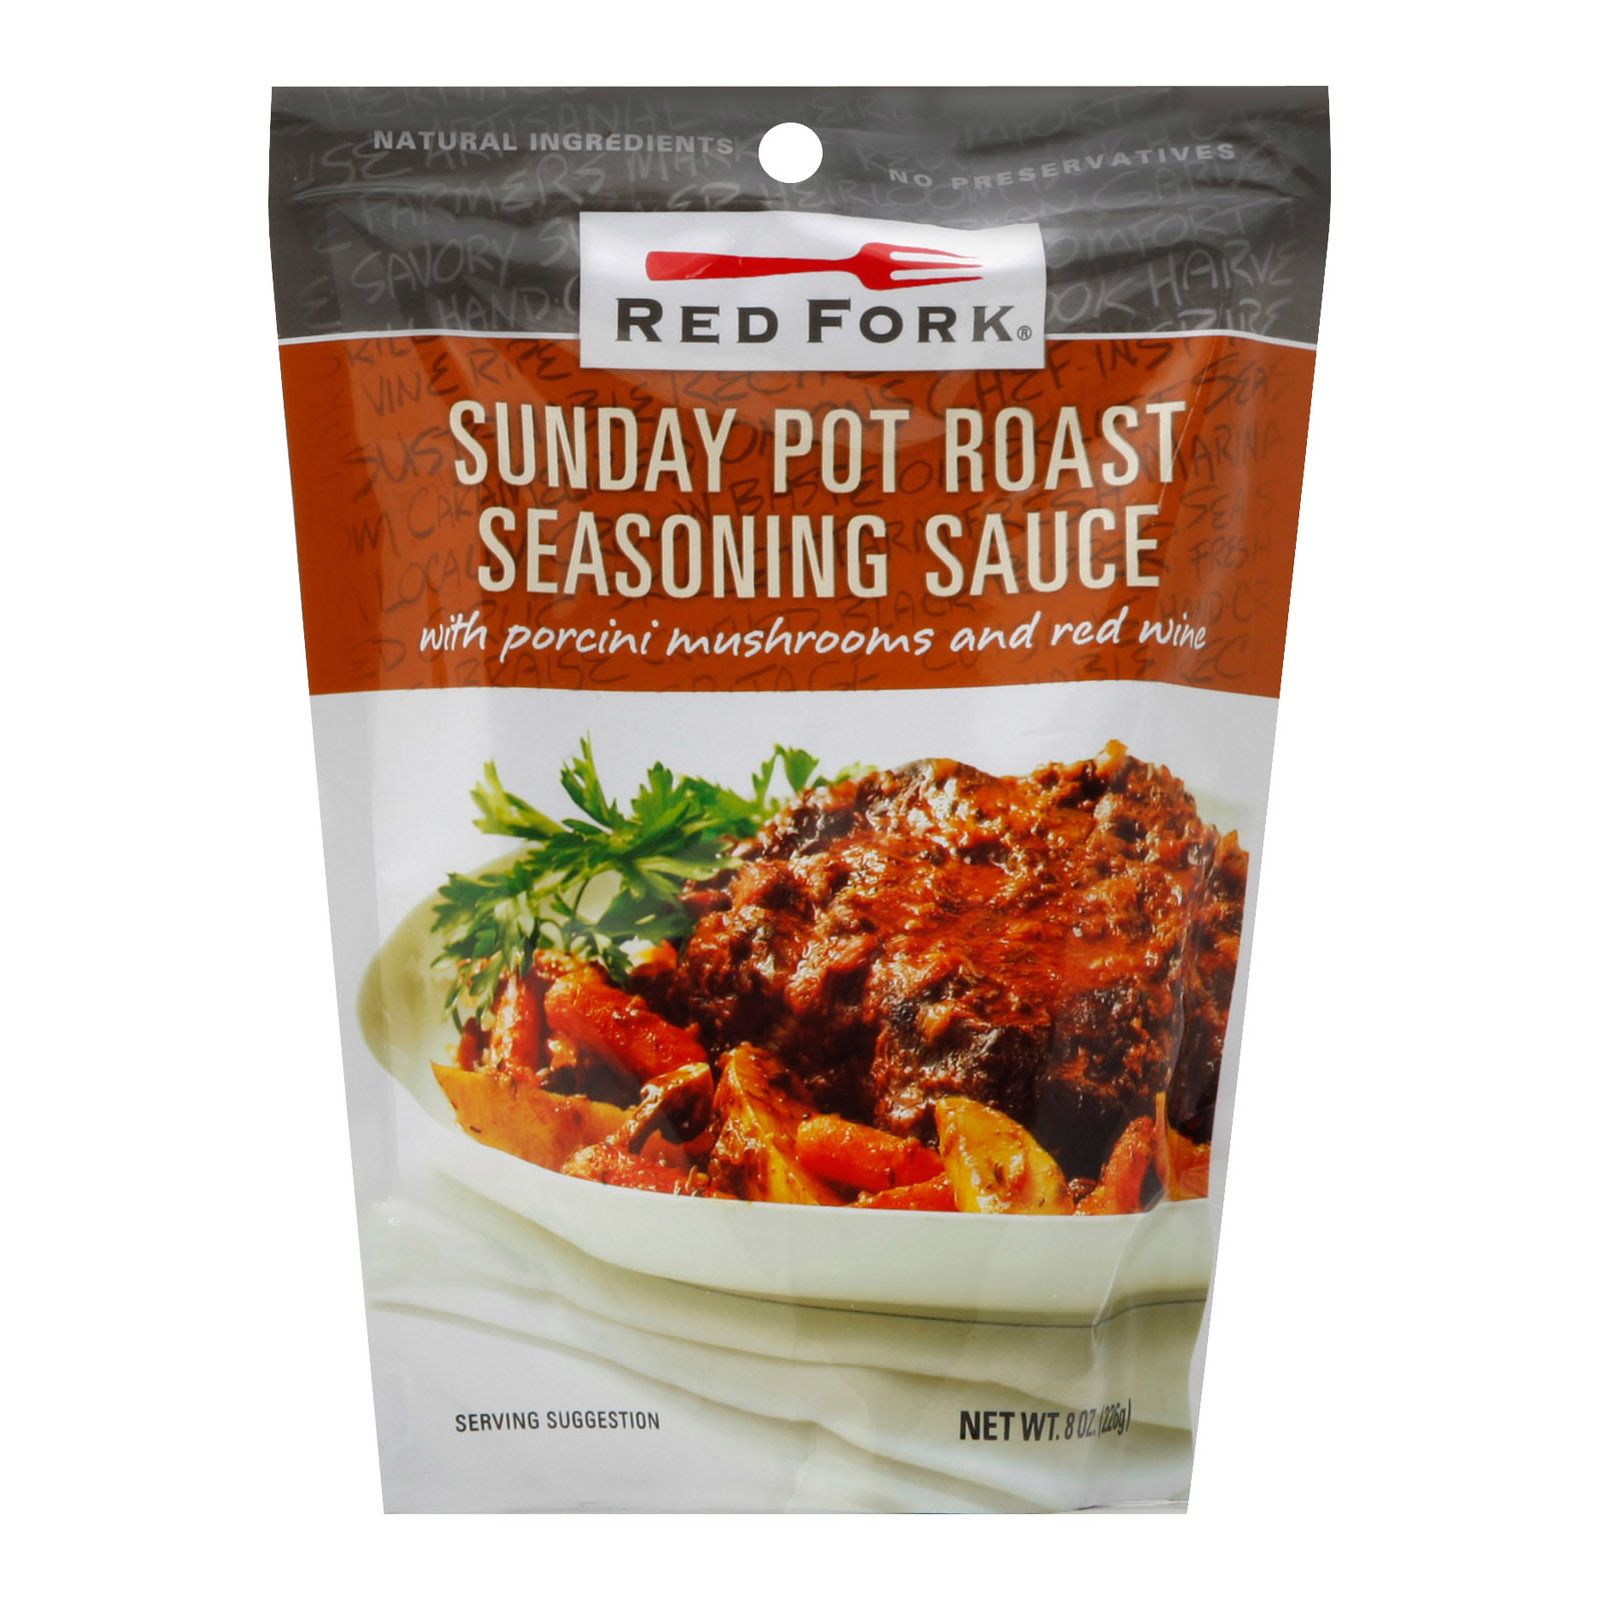 Red Fork Seasoning Sauce -Sunday Potato Roast - Case of 6 - 8 oz